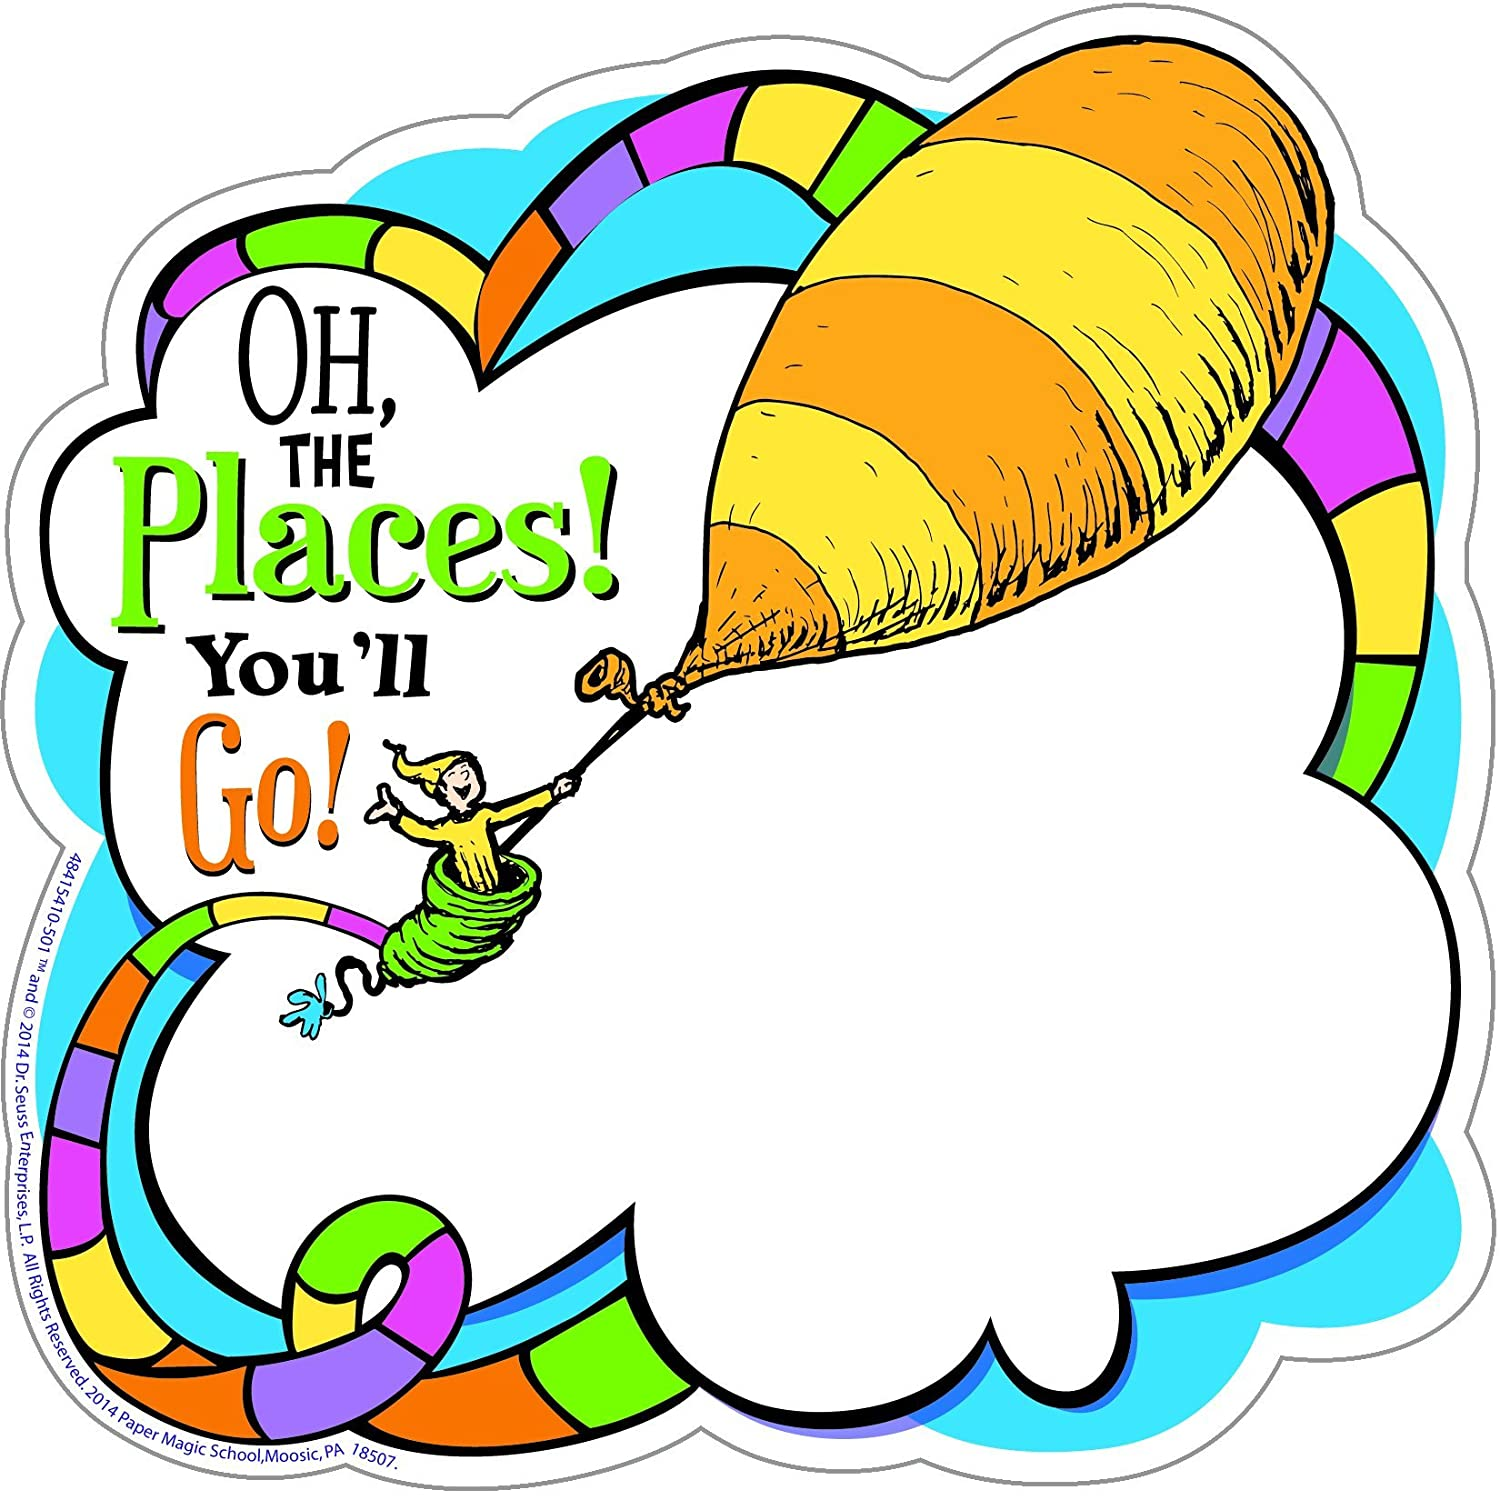 Eureka Dr Seuss Oh The Places Youll Go Paper Cut Outs For Schools And Classrooms 36pc 55 W X 55 H